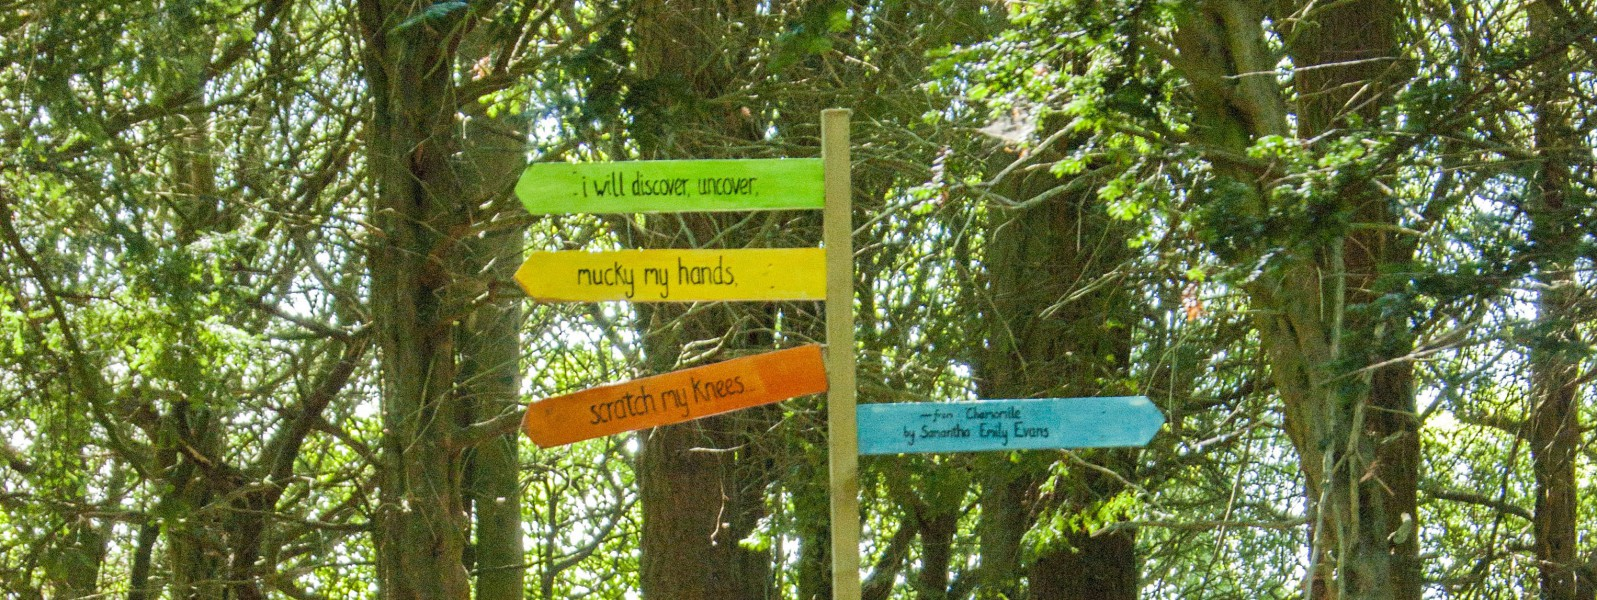 Beneath The Boughs poetry installation at Lowther Castle, Cumbria. Funded by Arts Council England.